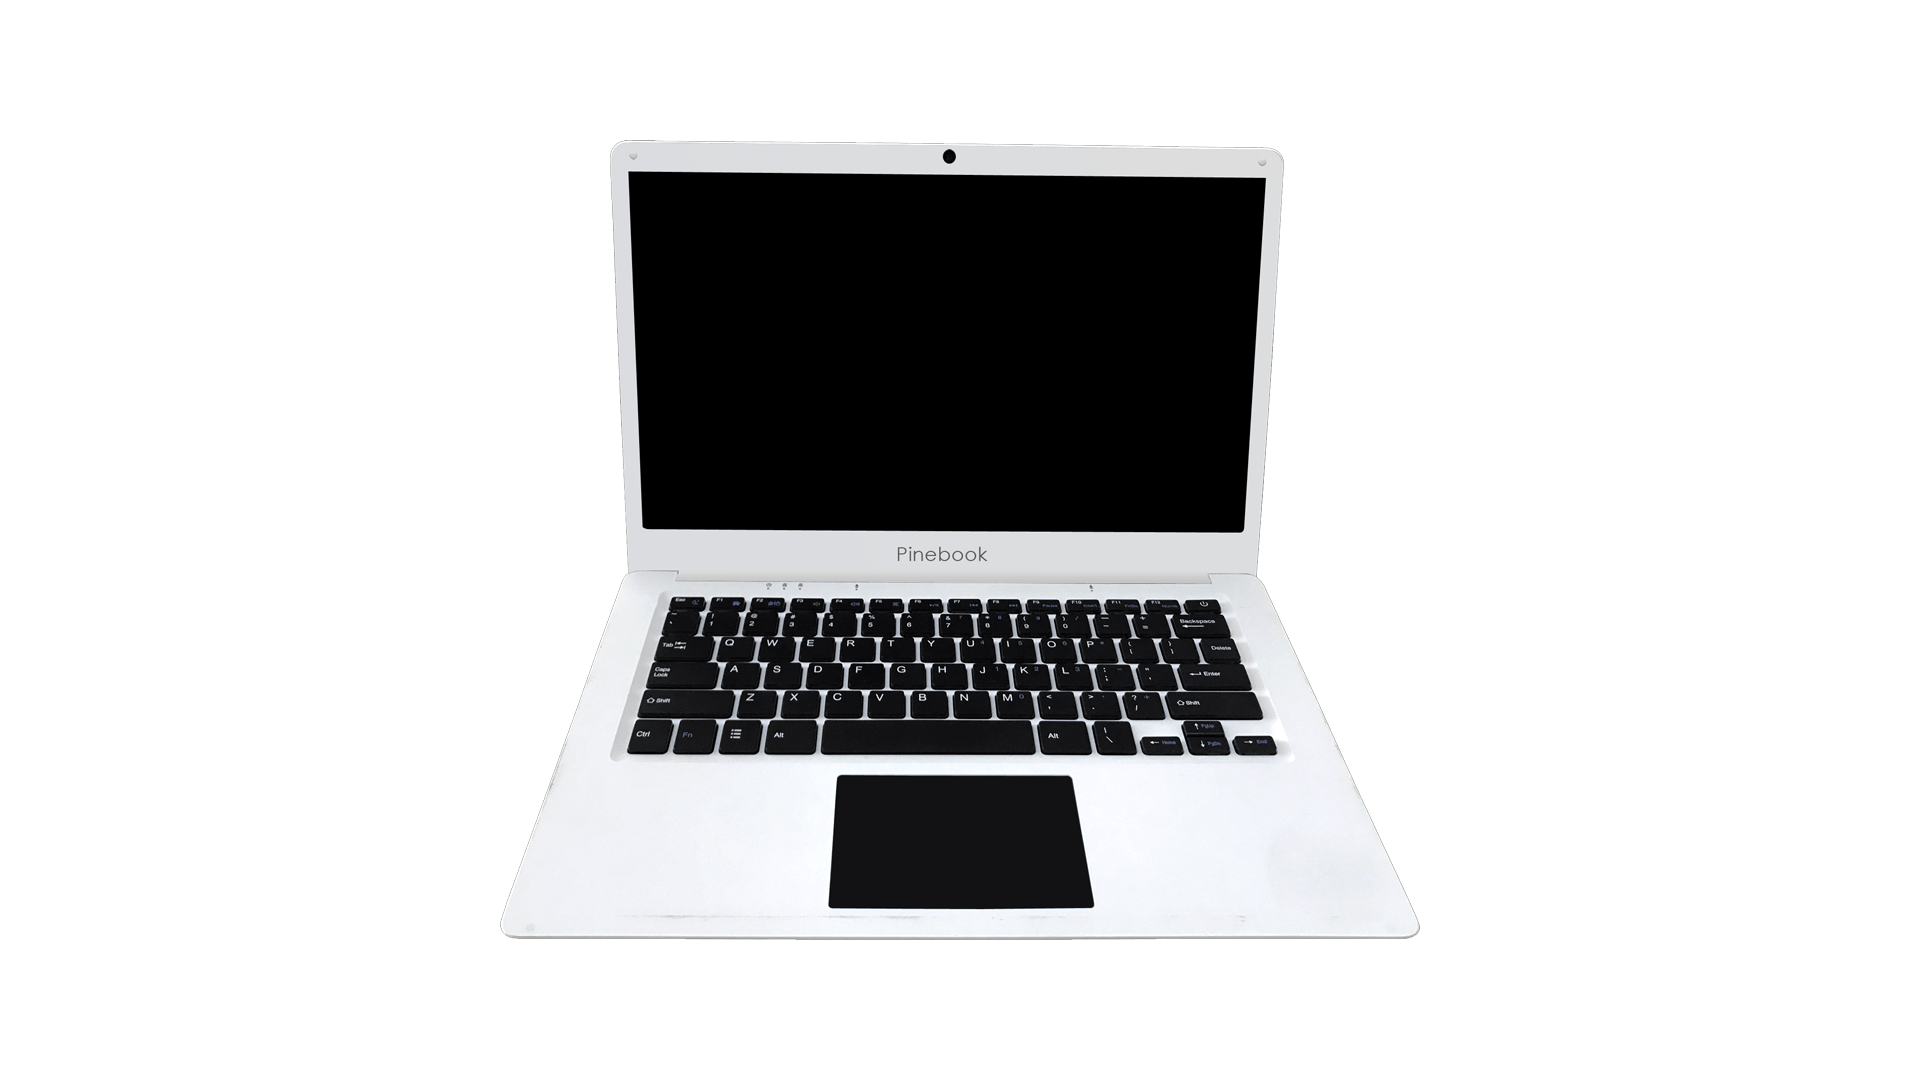 Pinebook A64